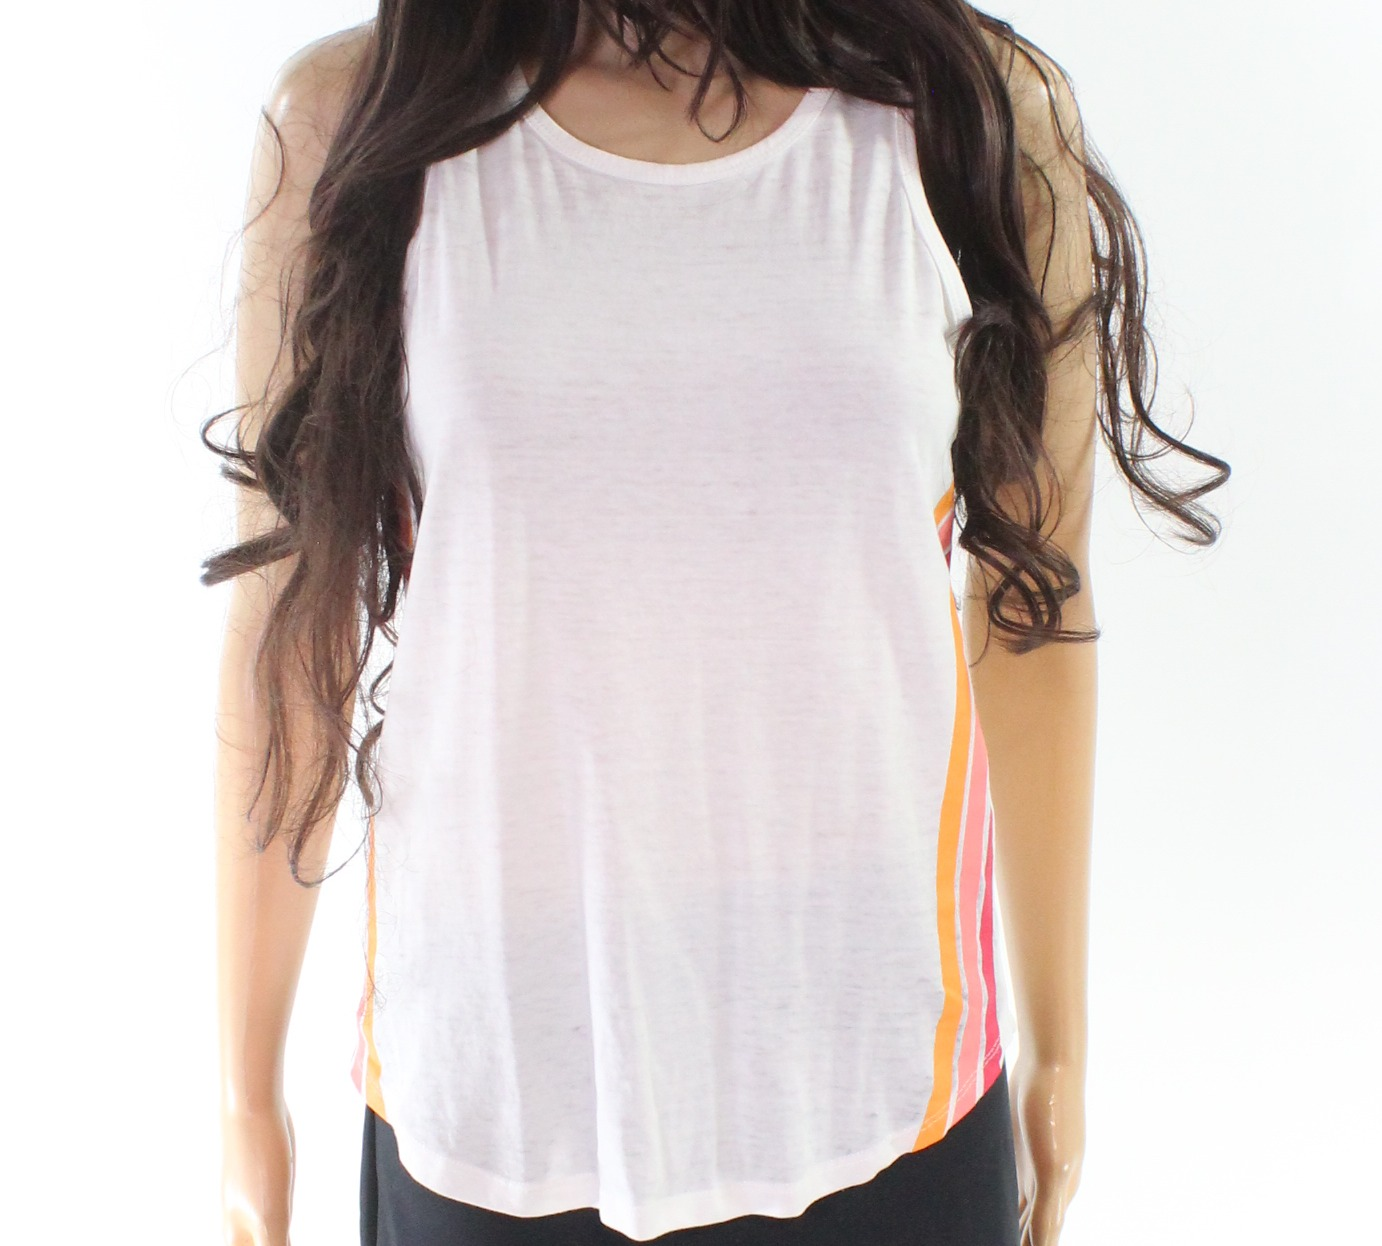 f0308508a5 Details about Pink Rose NEW White Women's Size Small S Striped Scoop Neck  Tank Cami Top #075